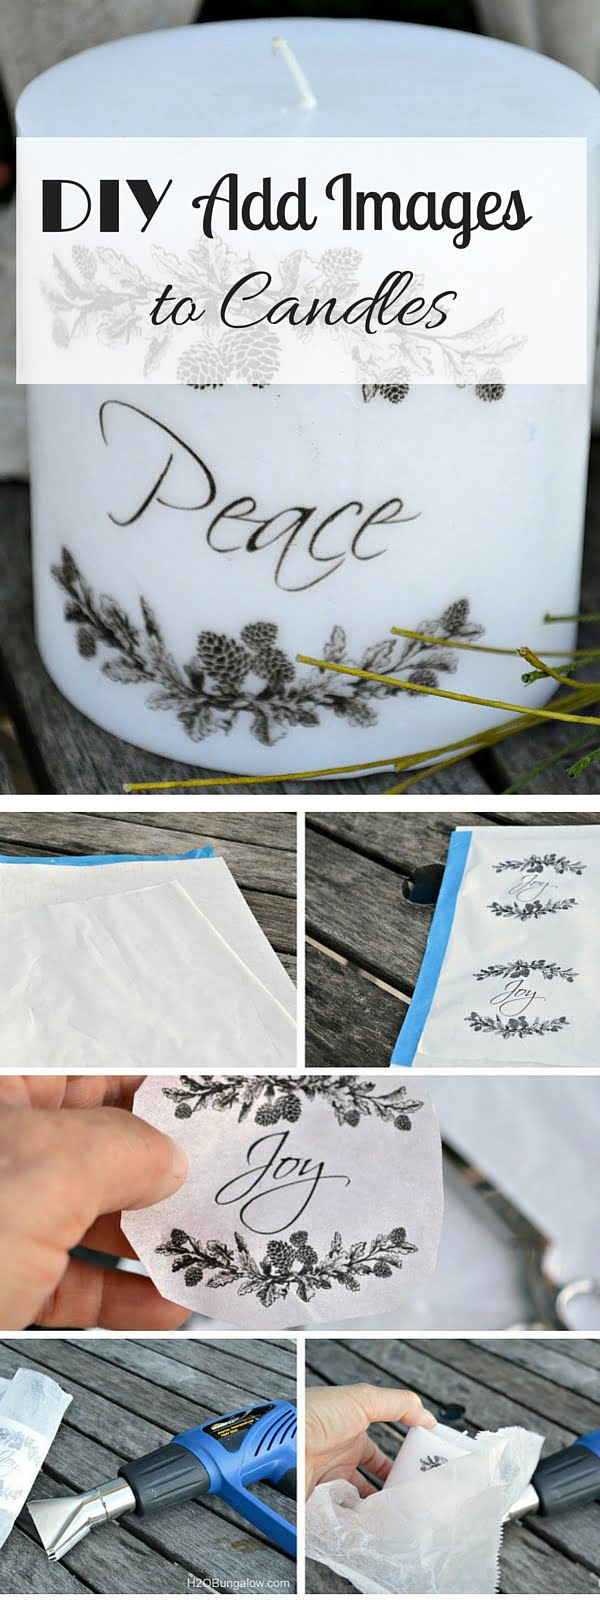 Check out the tutorial: #DIY Candle Images #crafts #homedecor